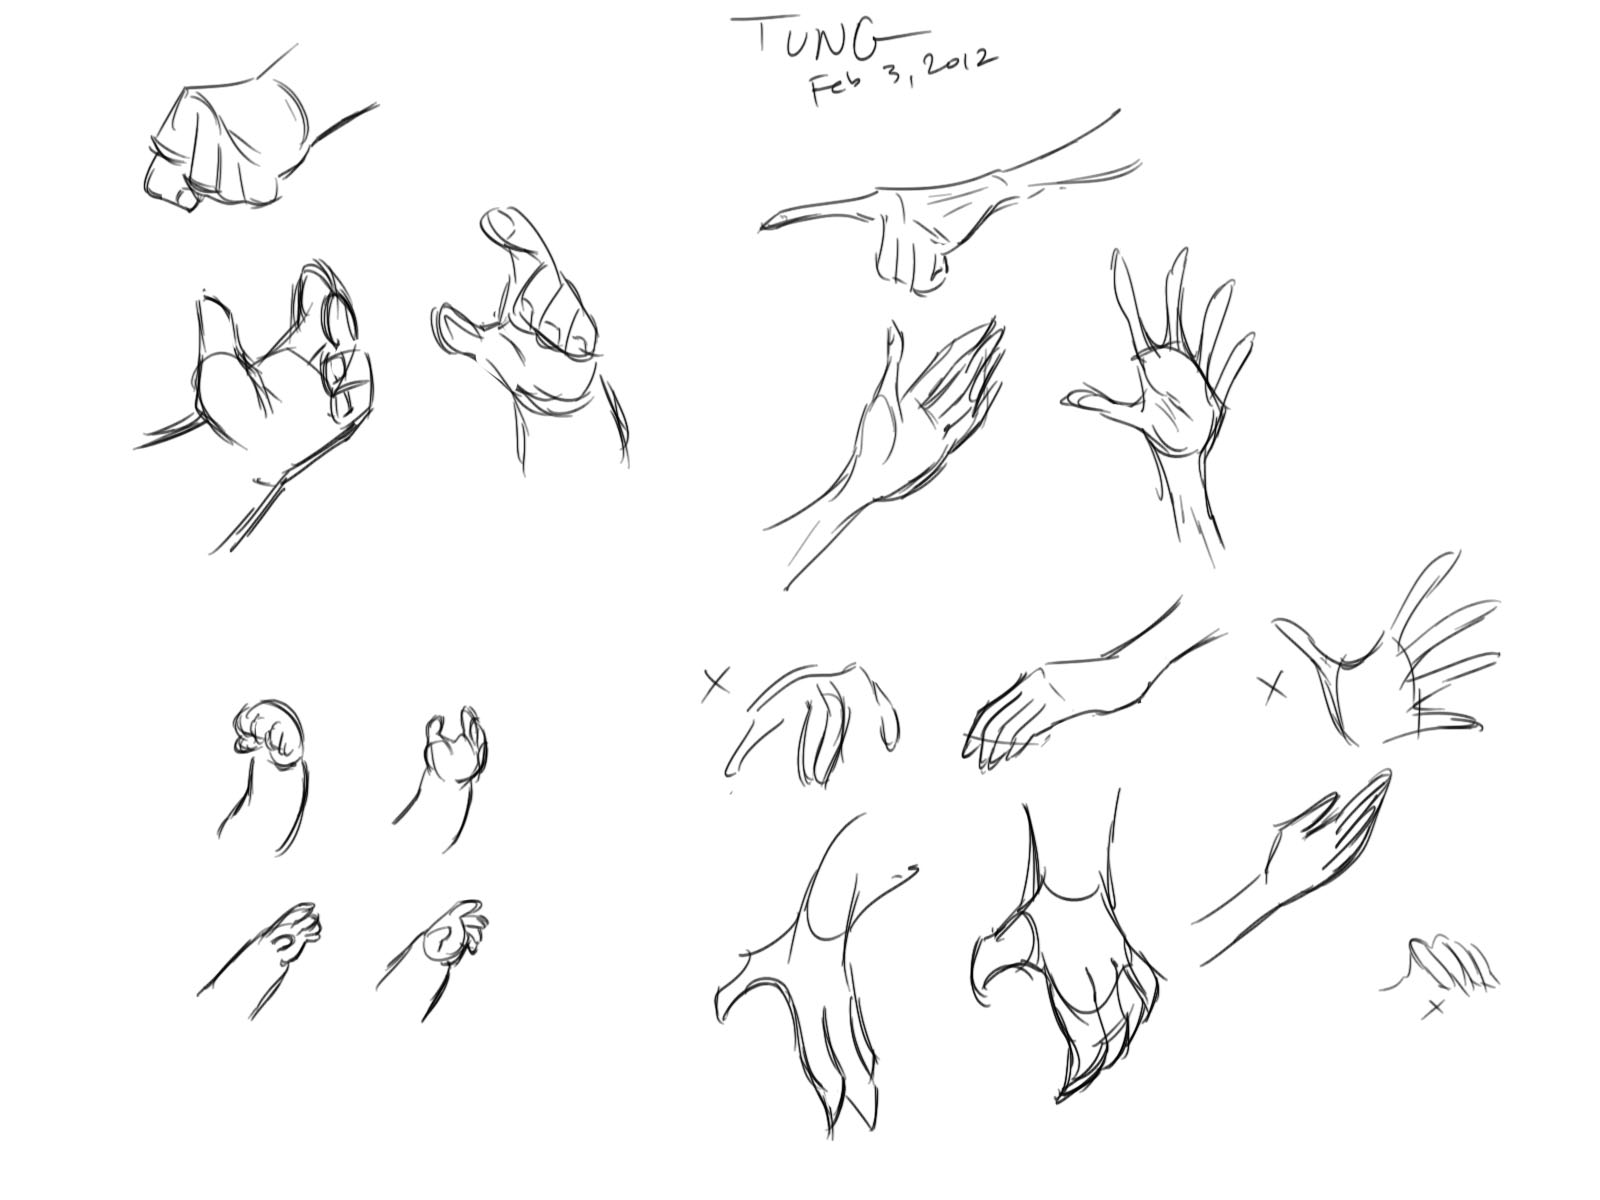 1600x1200 Tung's Web Log. First Drawing Day Of Heads And Hands